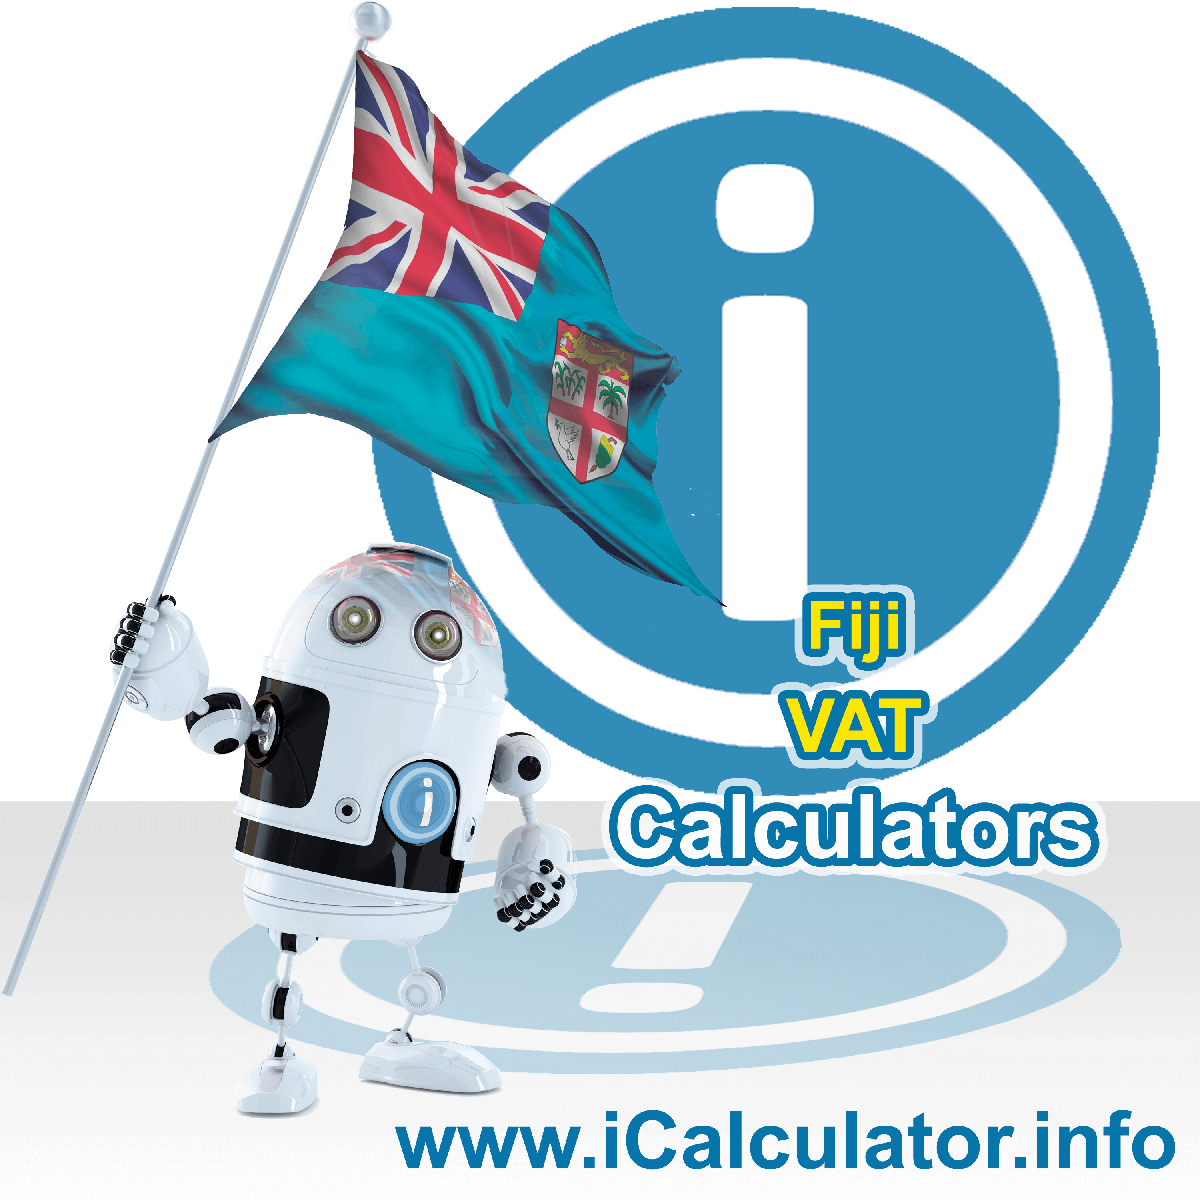 Fiji VAT Calculator. This image shows the Fiji flag and information relating to the VAT formula used for calculating Value Added Tax in Fiji using the Fiji VAT Calculator in 2021